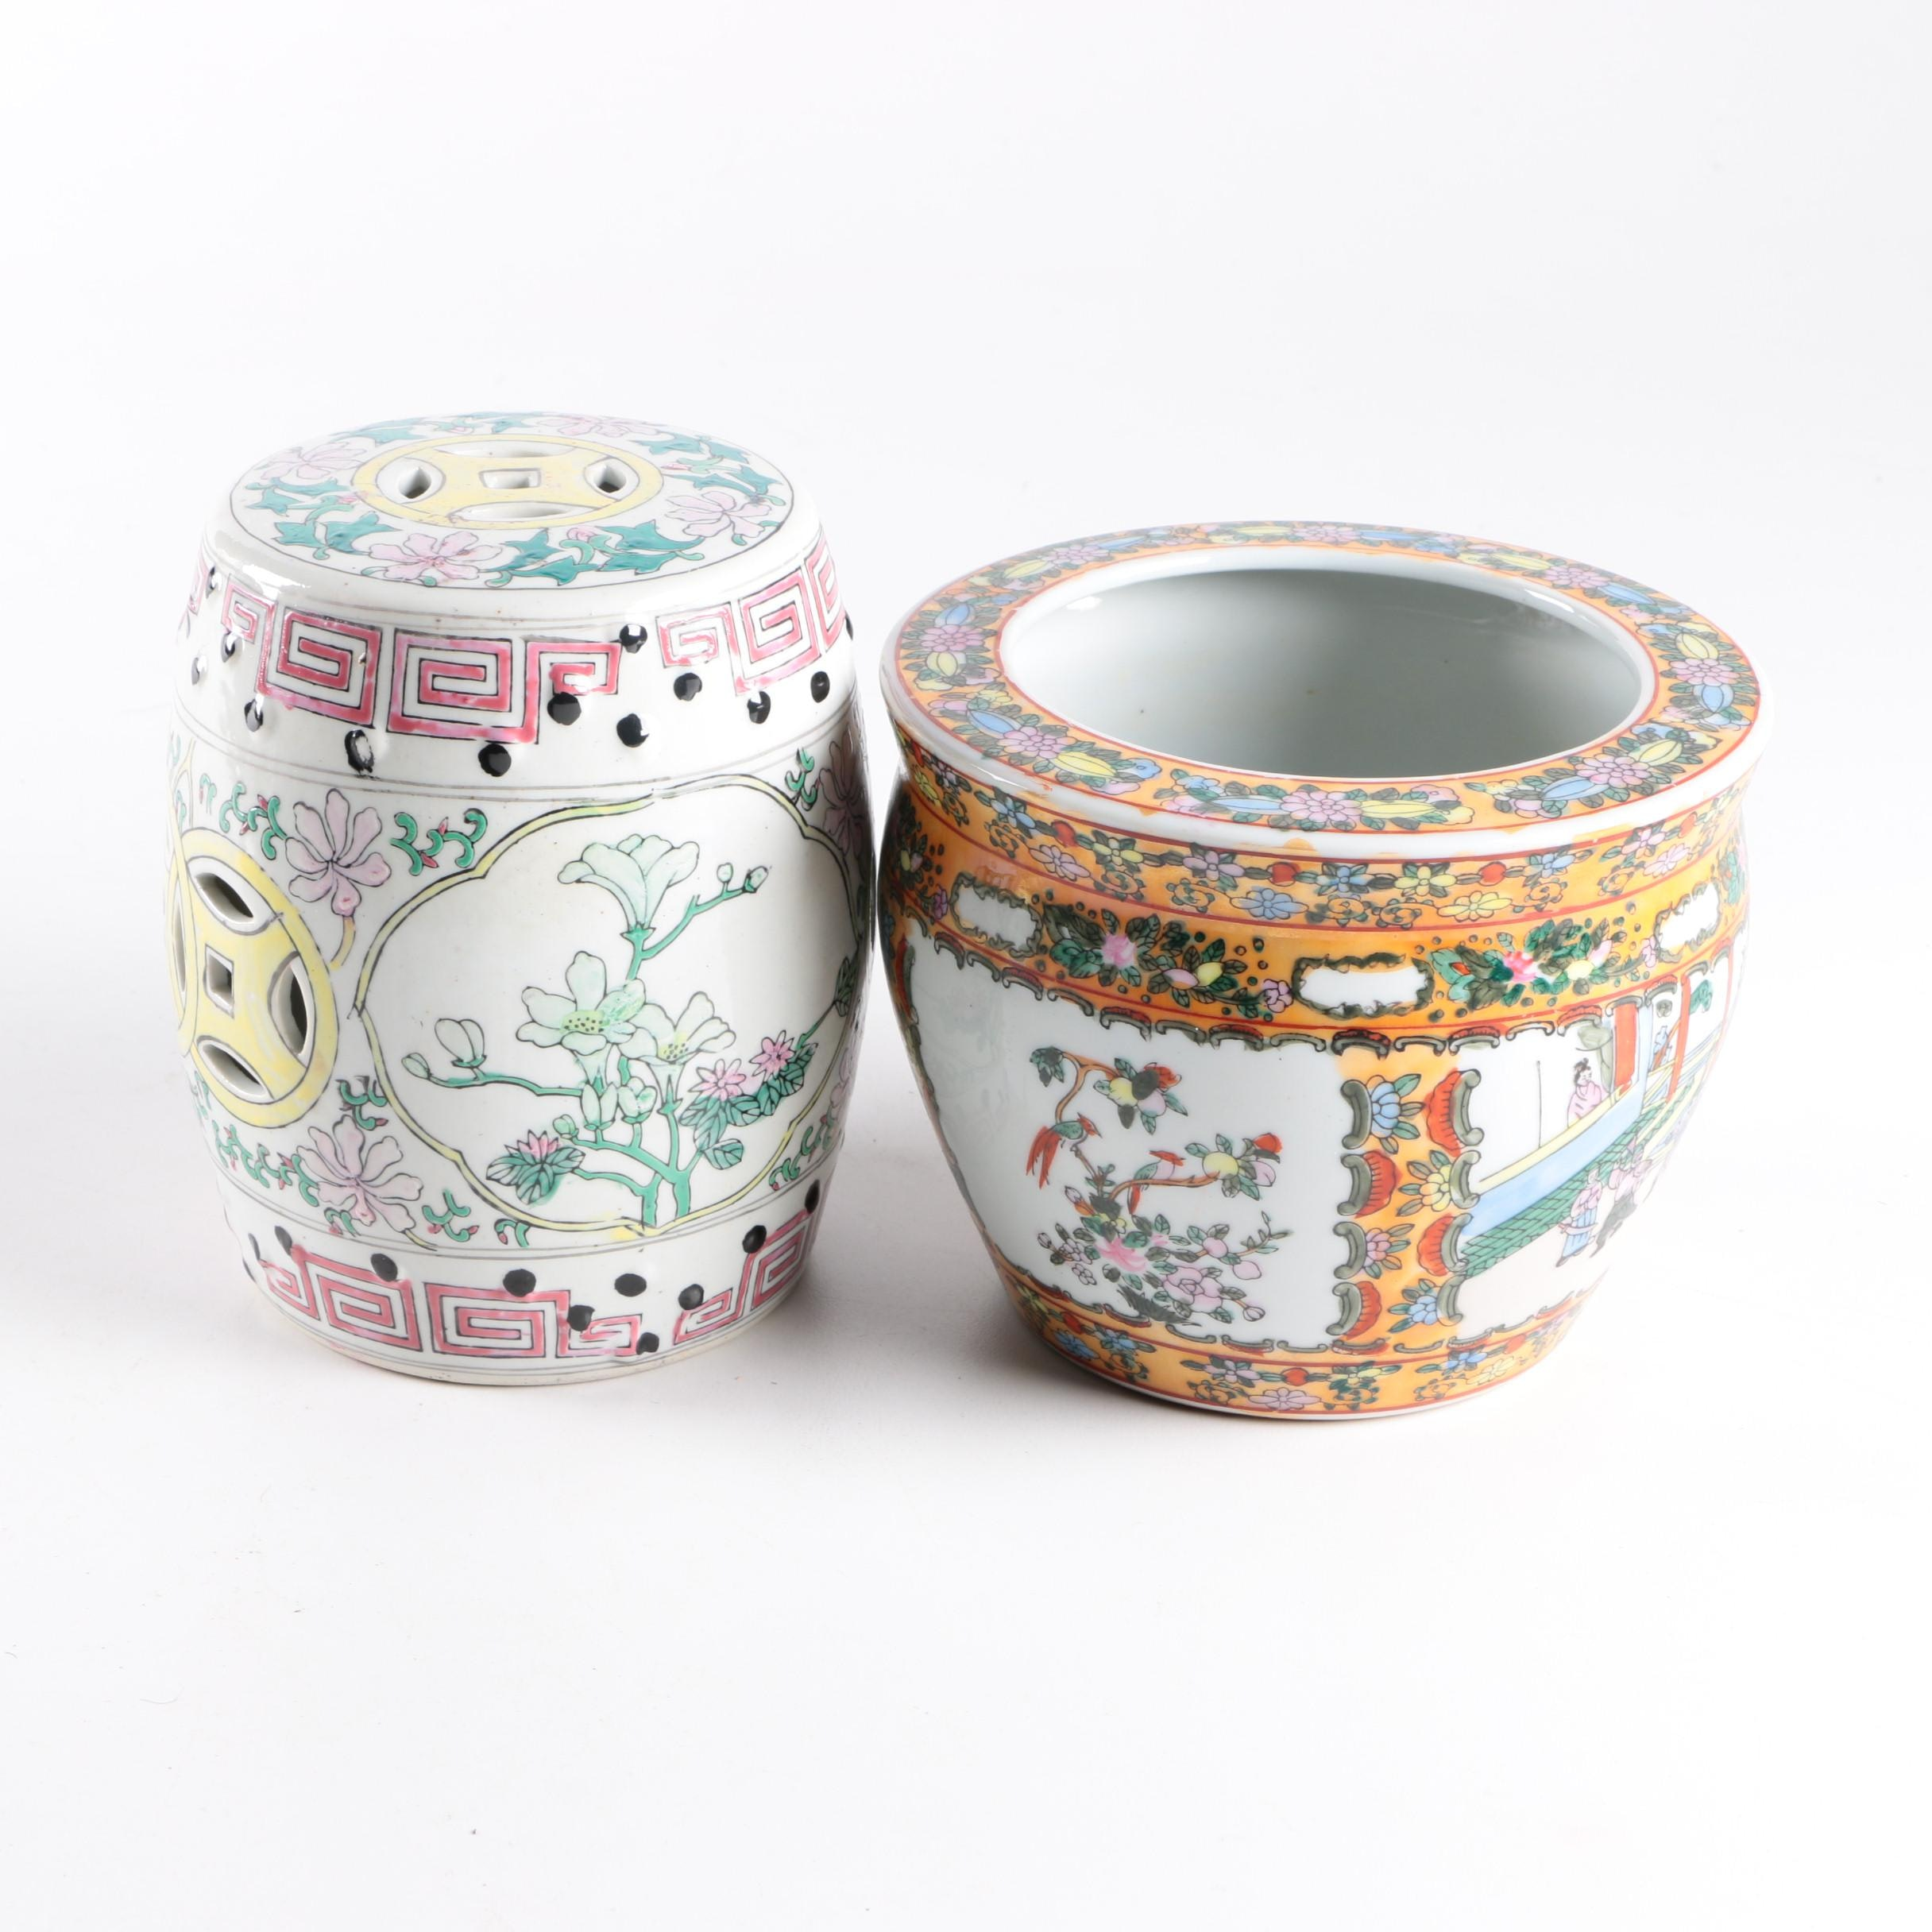 Chinese Ceramic Garden Stool and Planter